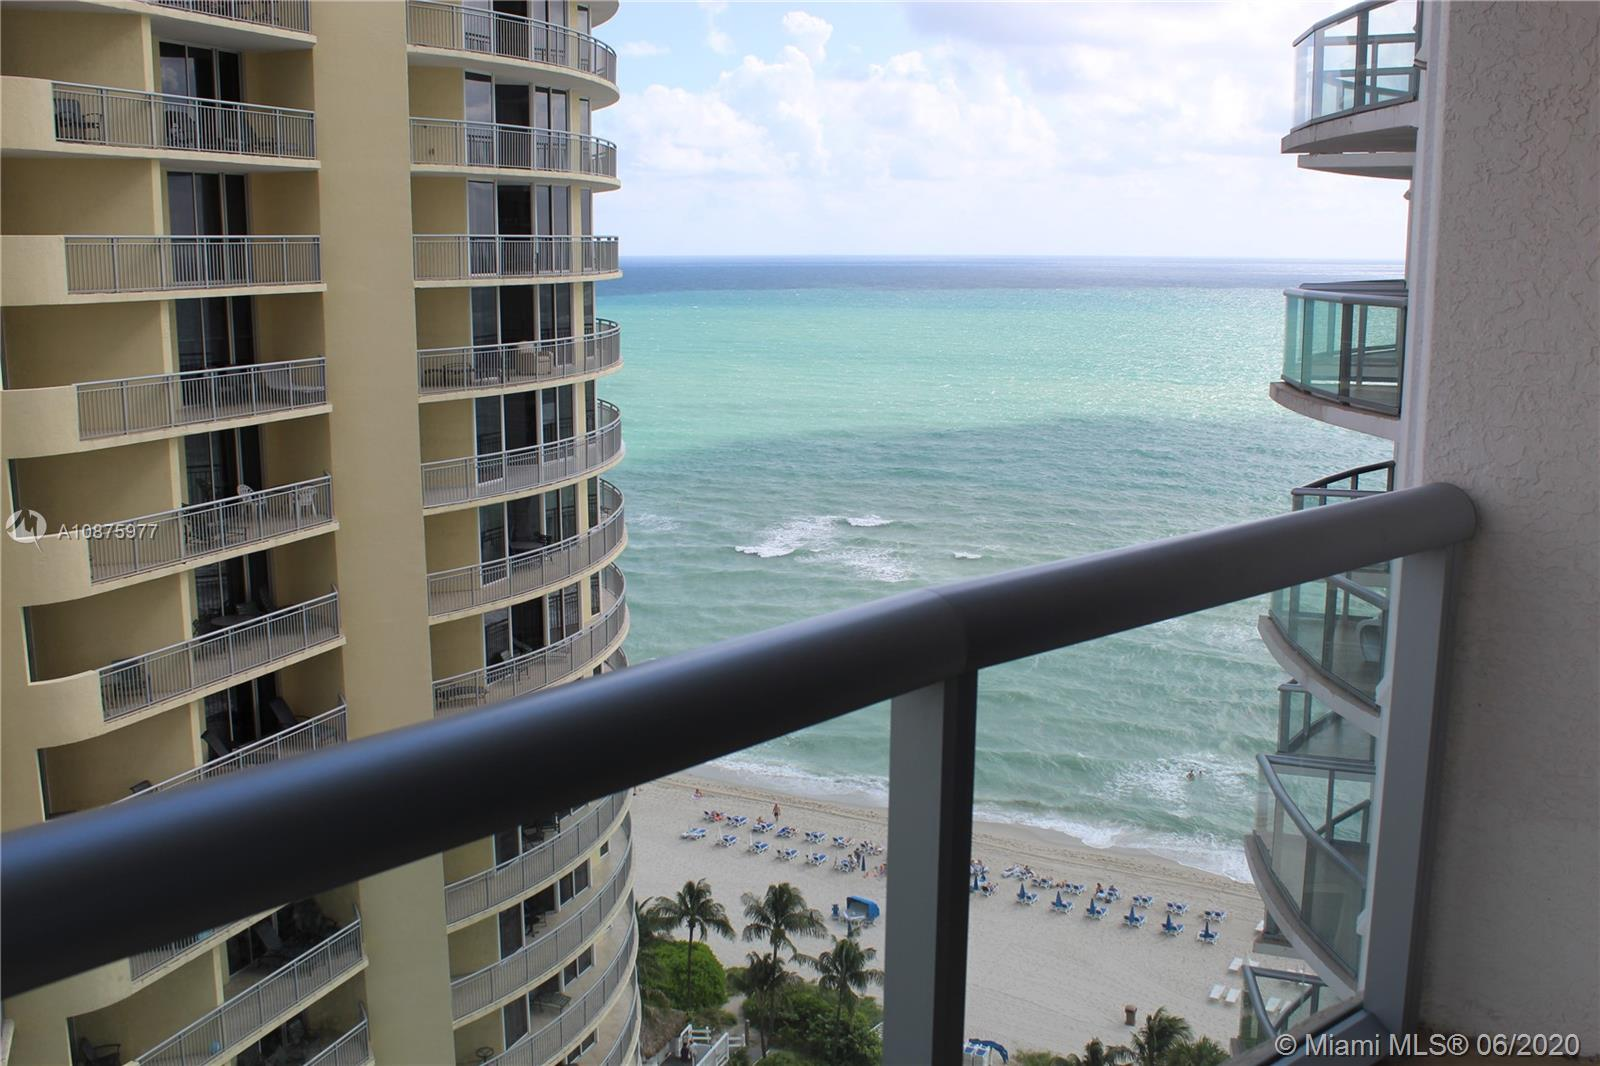 17315 Collins Ave 1807, Sunny Isles Beach, FL 33160